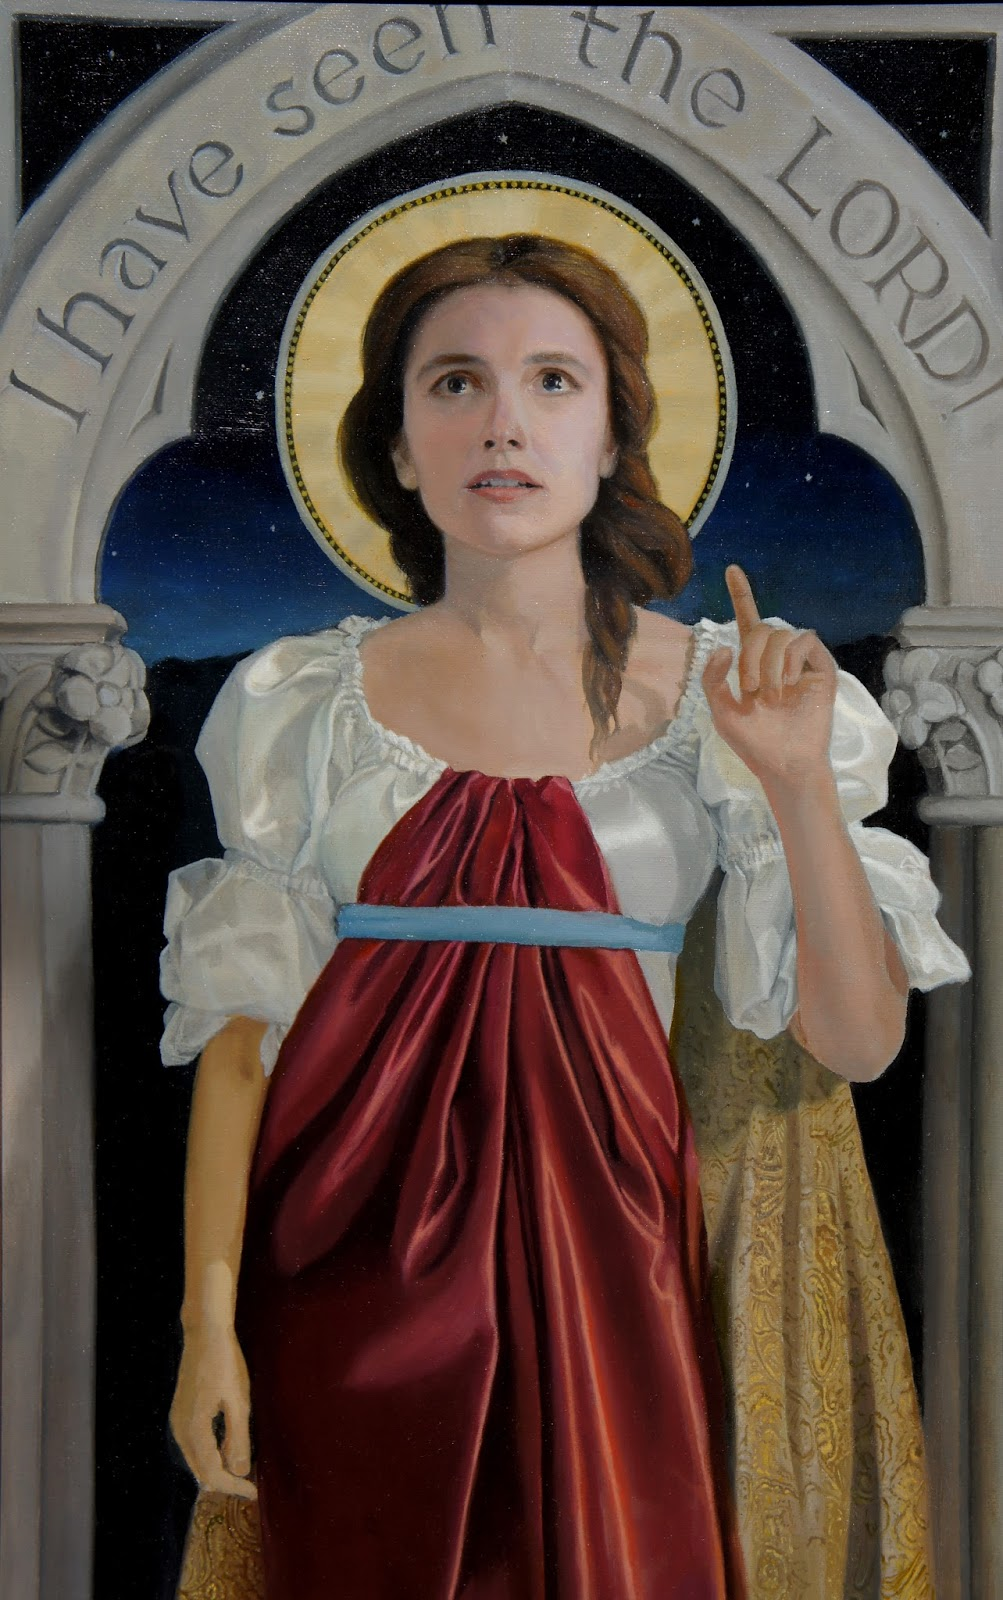 mary magdalene essay Mary magdalene magdalene is a key figure during jesus' ministry and is shown as such in all four gospels she witnessed jesus' ministry, death, burial, and resurrection mary was from a small ancient fishing city north of tiberias, on the sea of galilee.